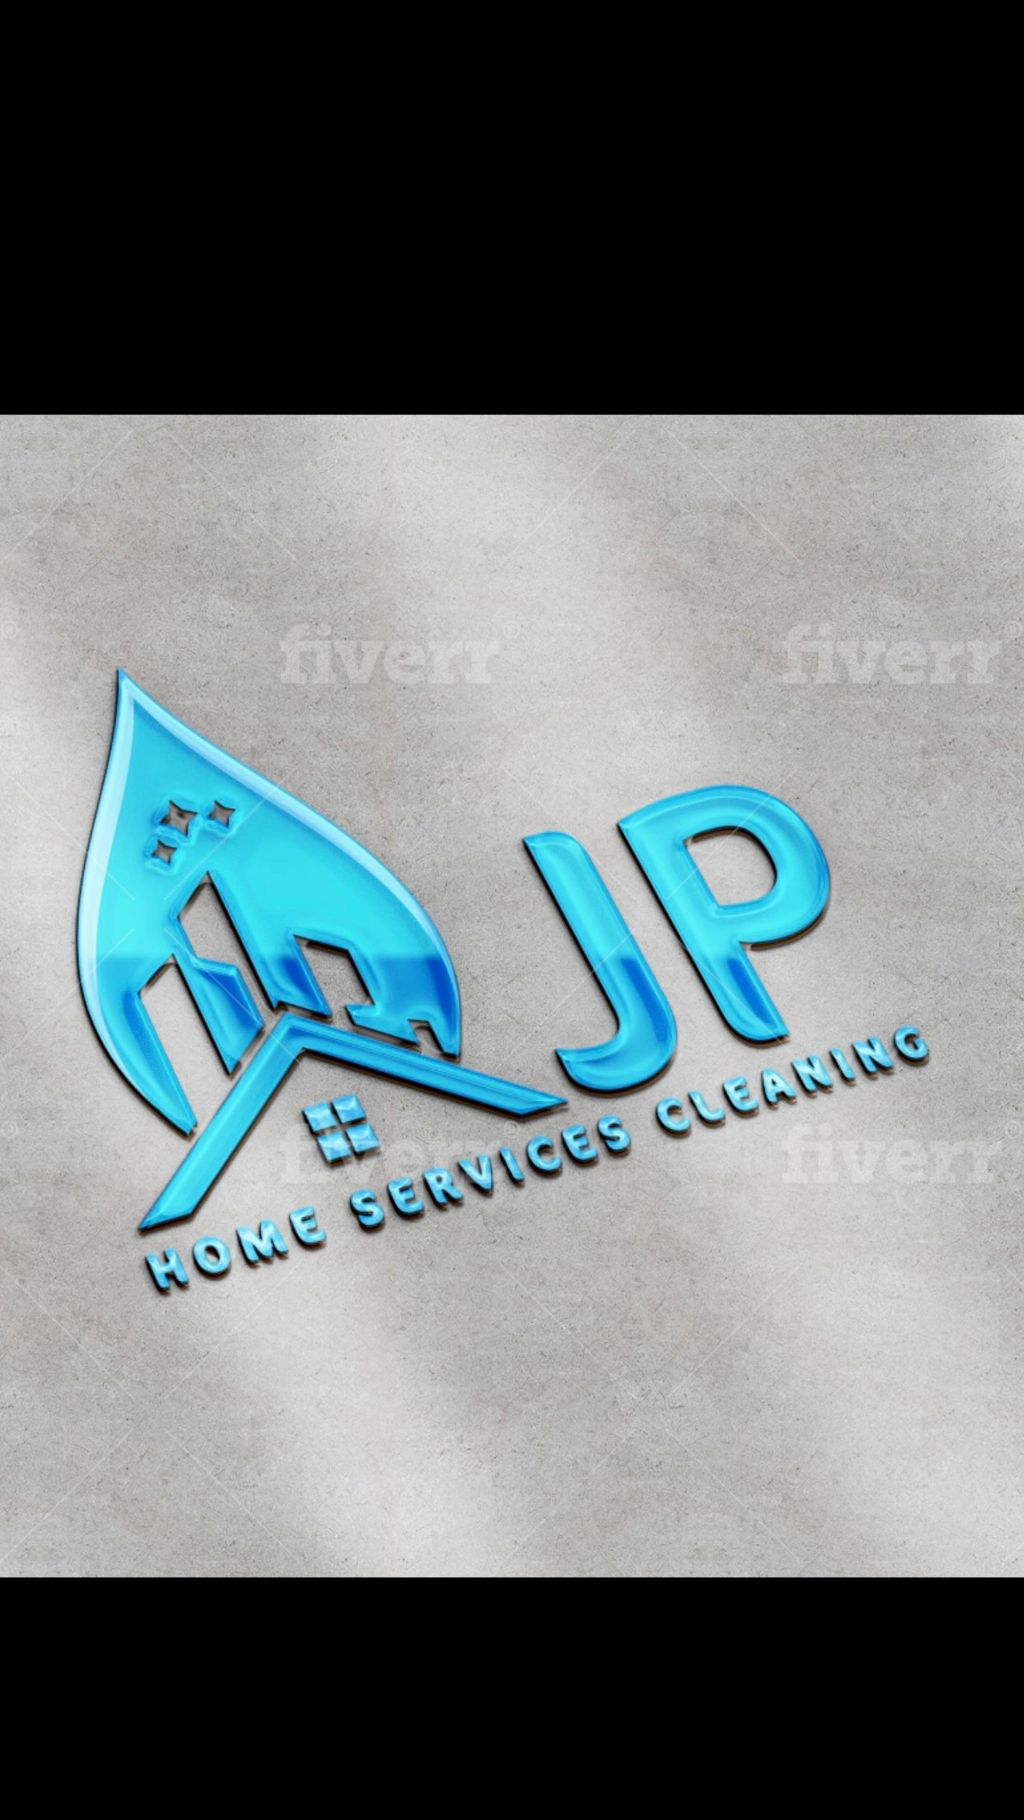 JP Home Services Cleaning